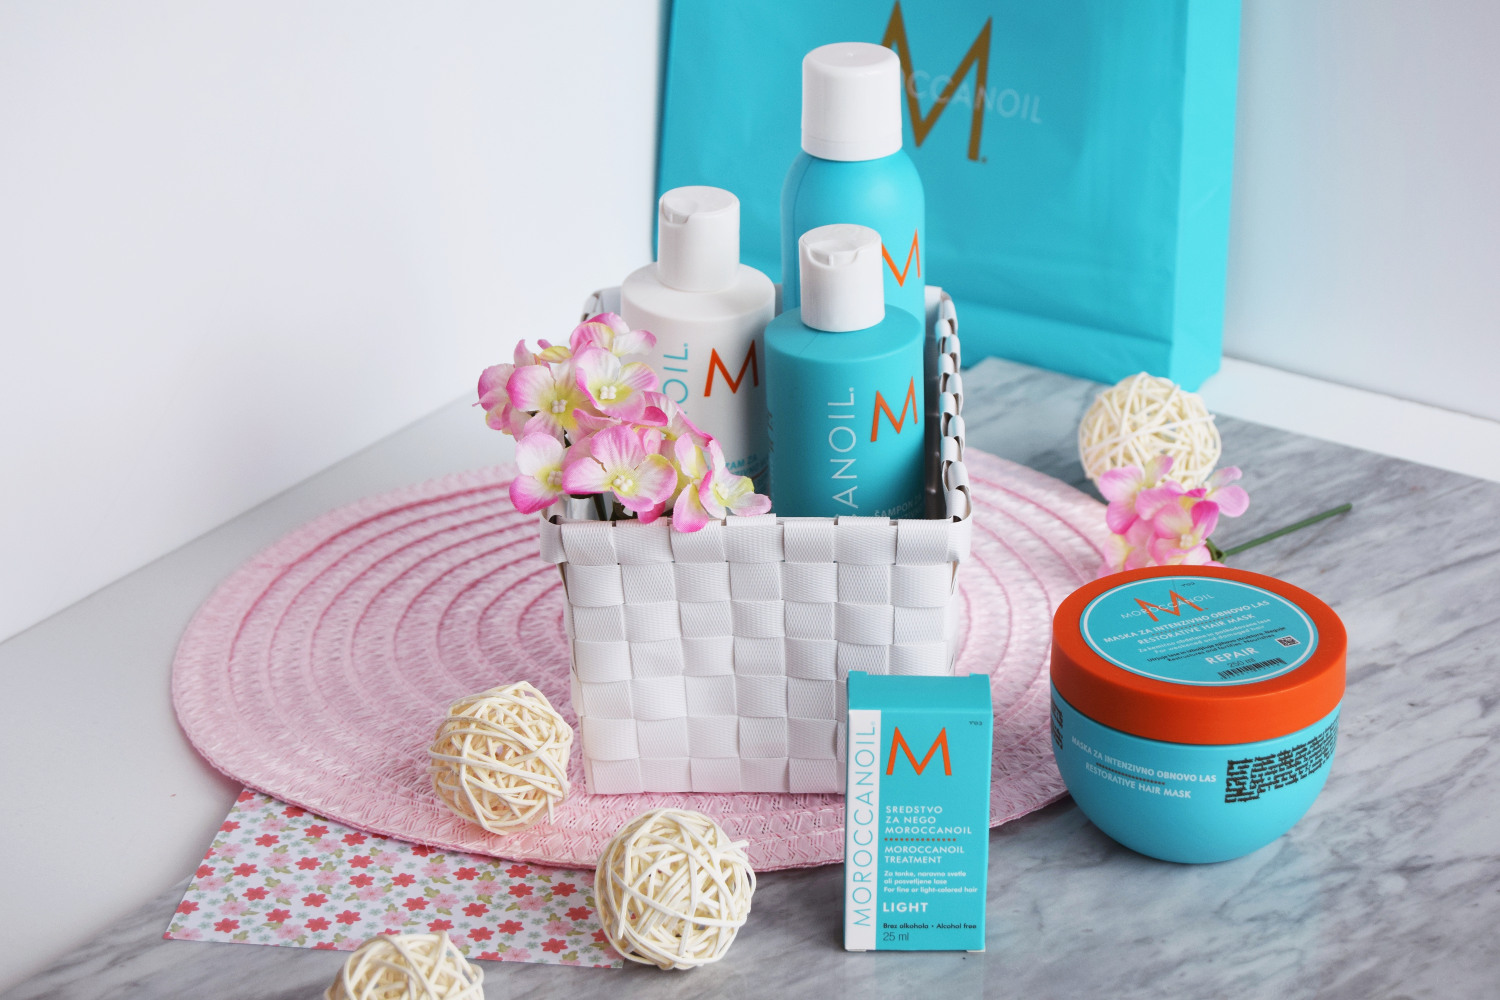 Moroccanoil_hair_Conditioner_Shampoo_Zalabell_beauty_1